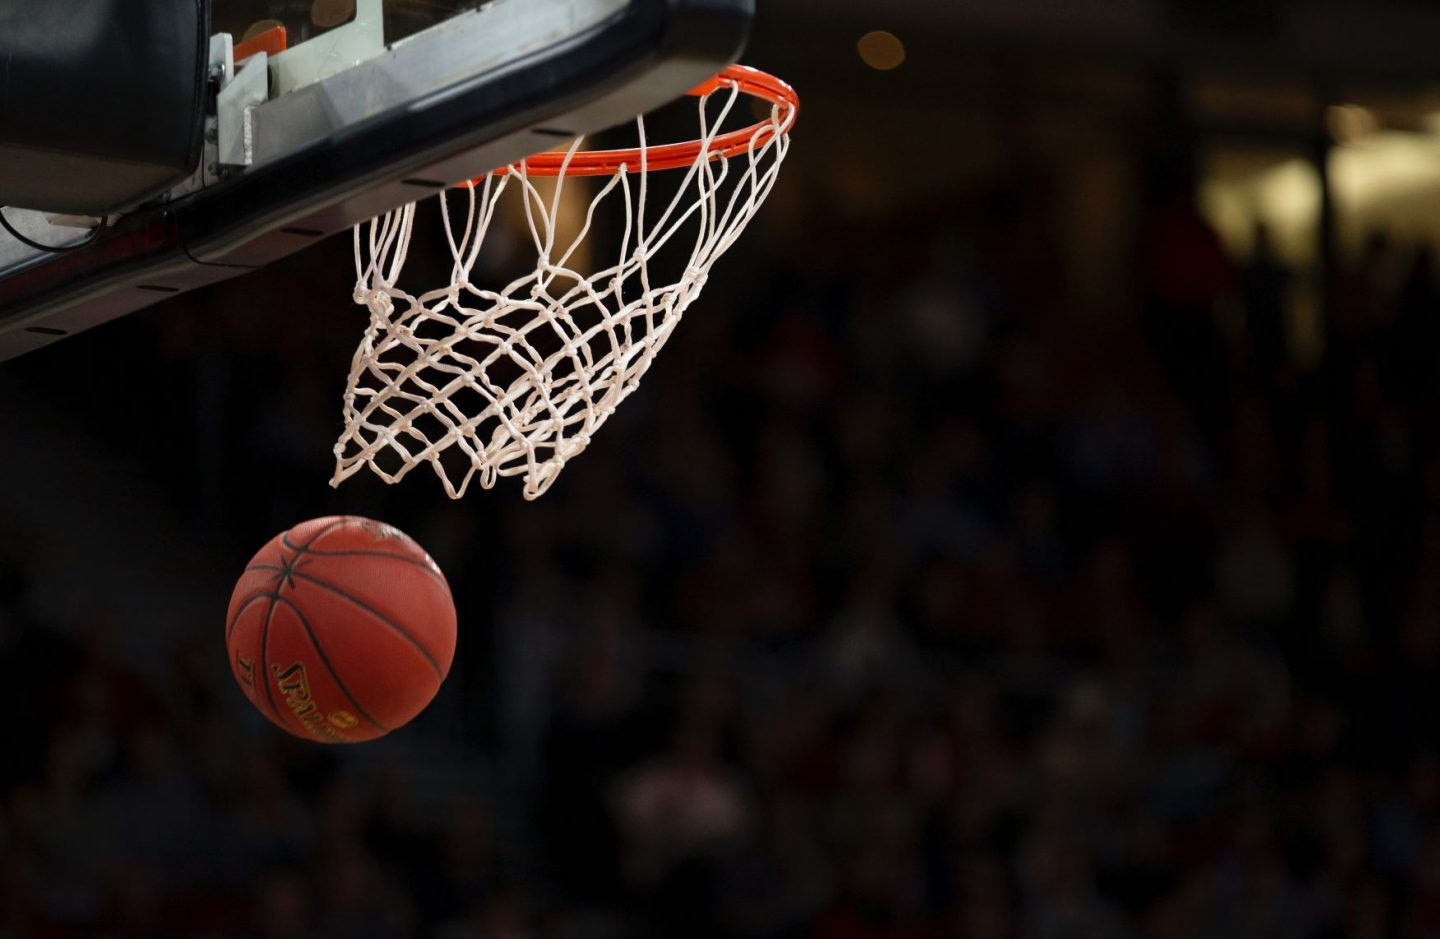 Question and answers for quiz - basketball